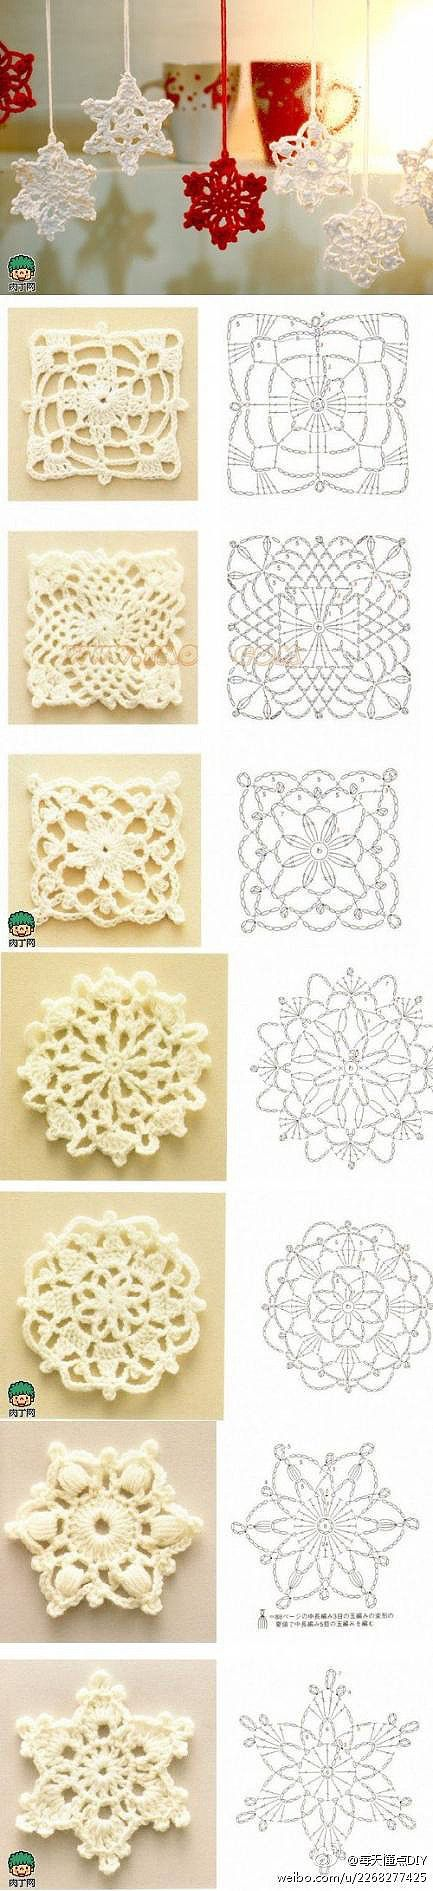 All kinds of Snowflakes to crochet for winter decor =] i think il make some into a table runner!